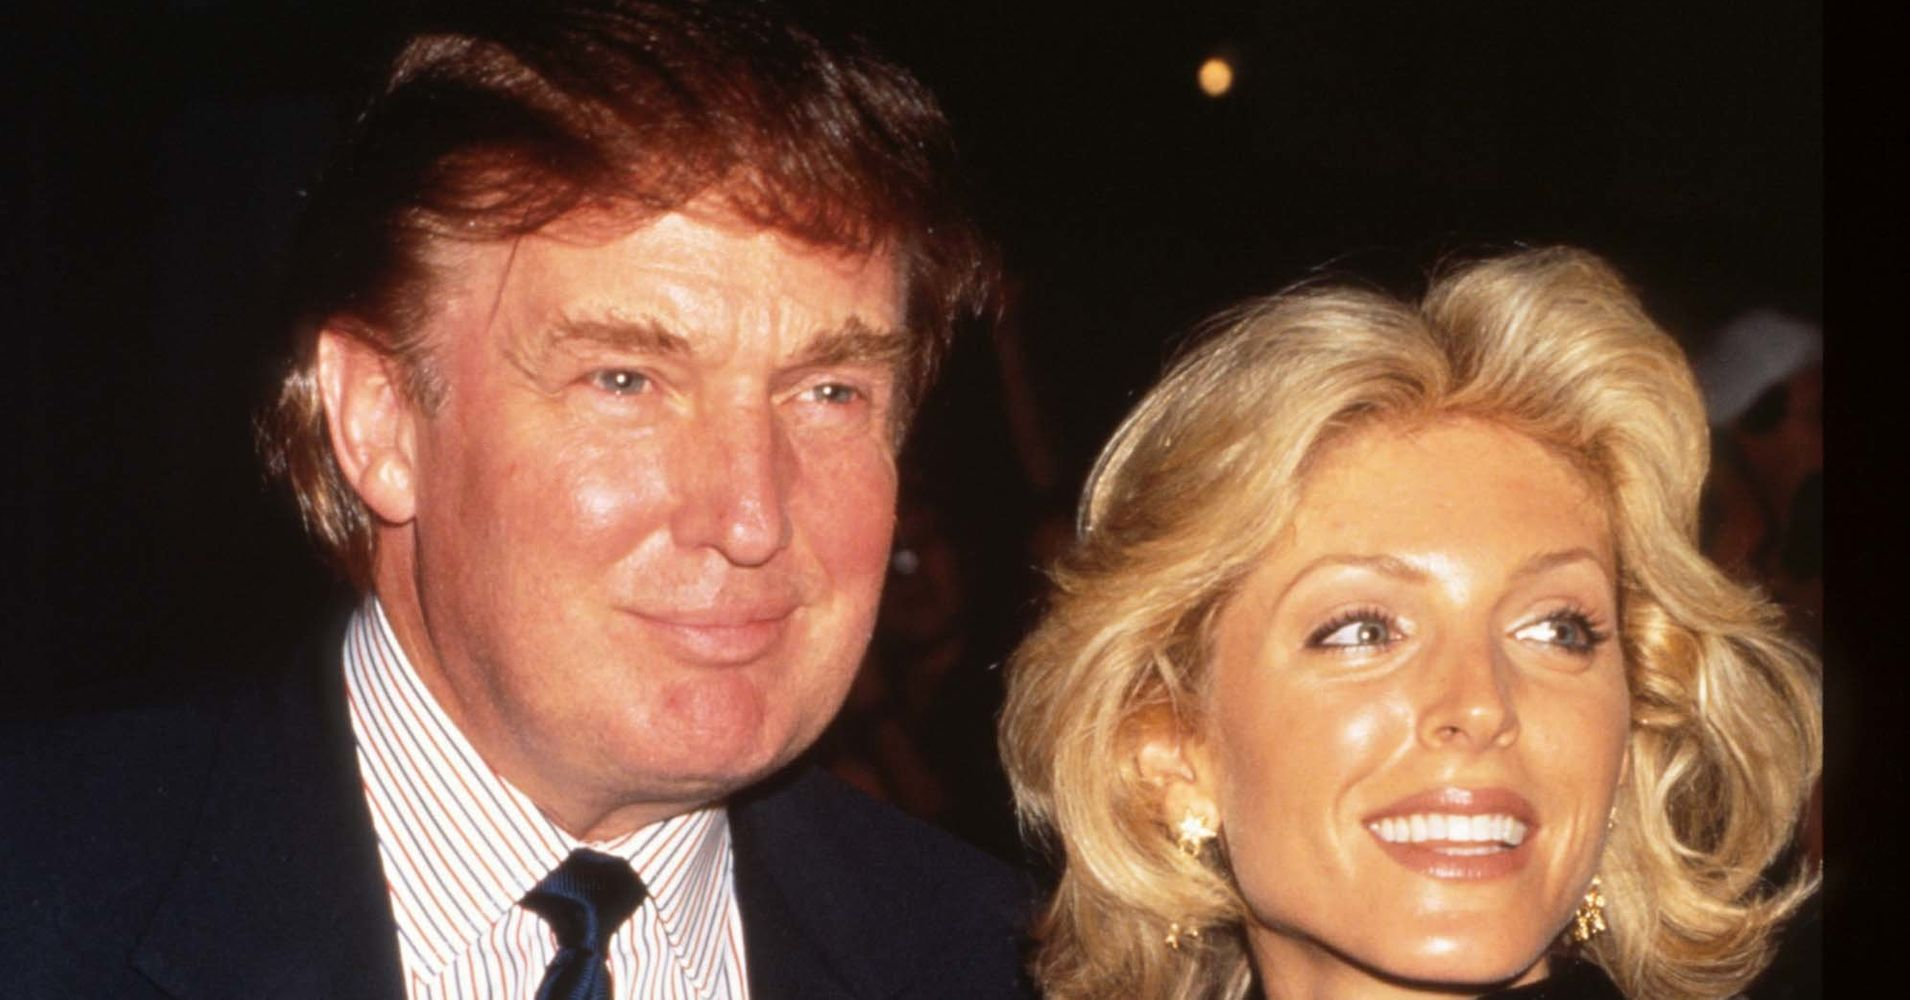 Engagement Ring Donald Trump Gave His Ex Wife Just Sold